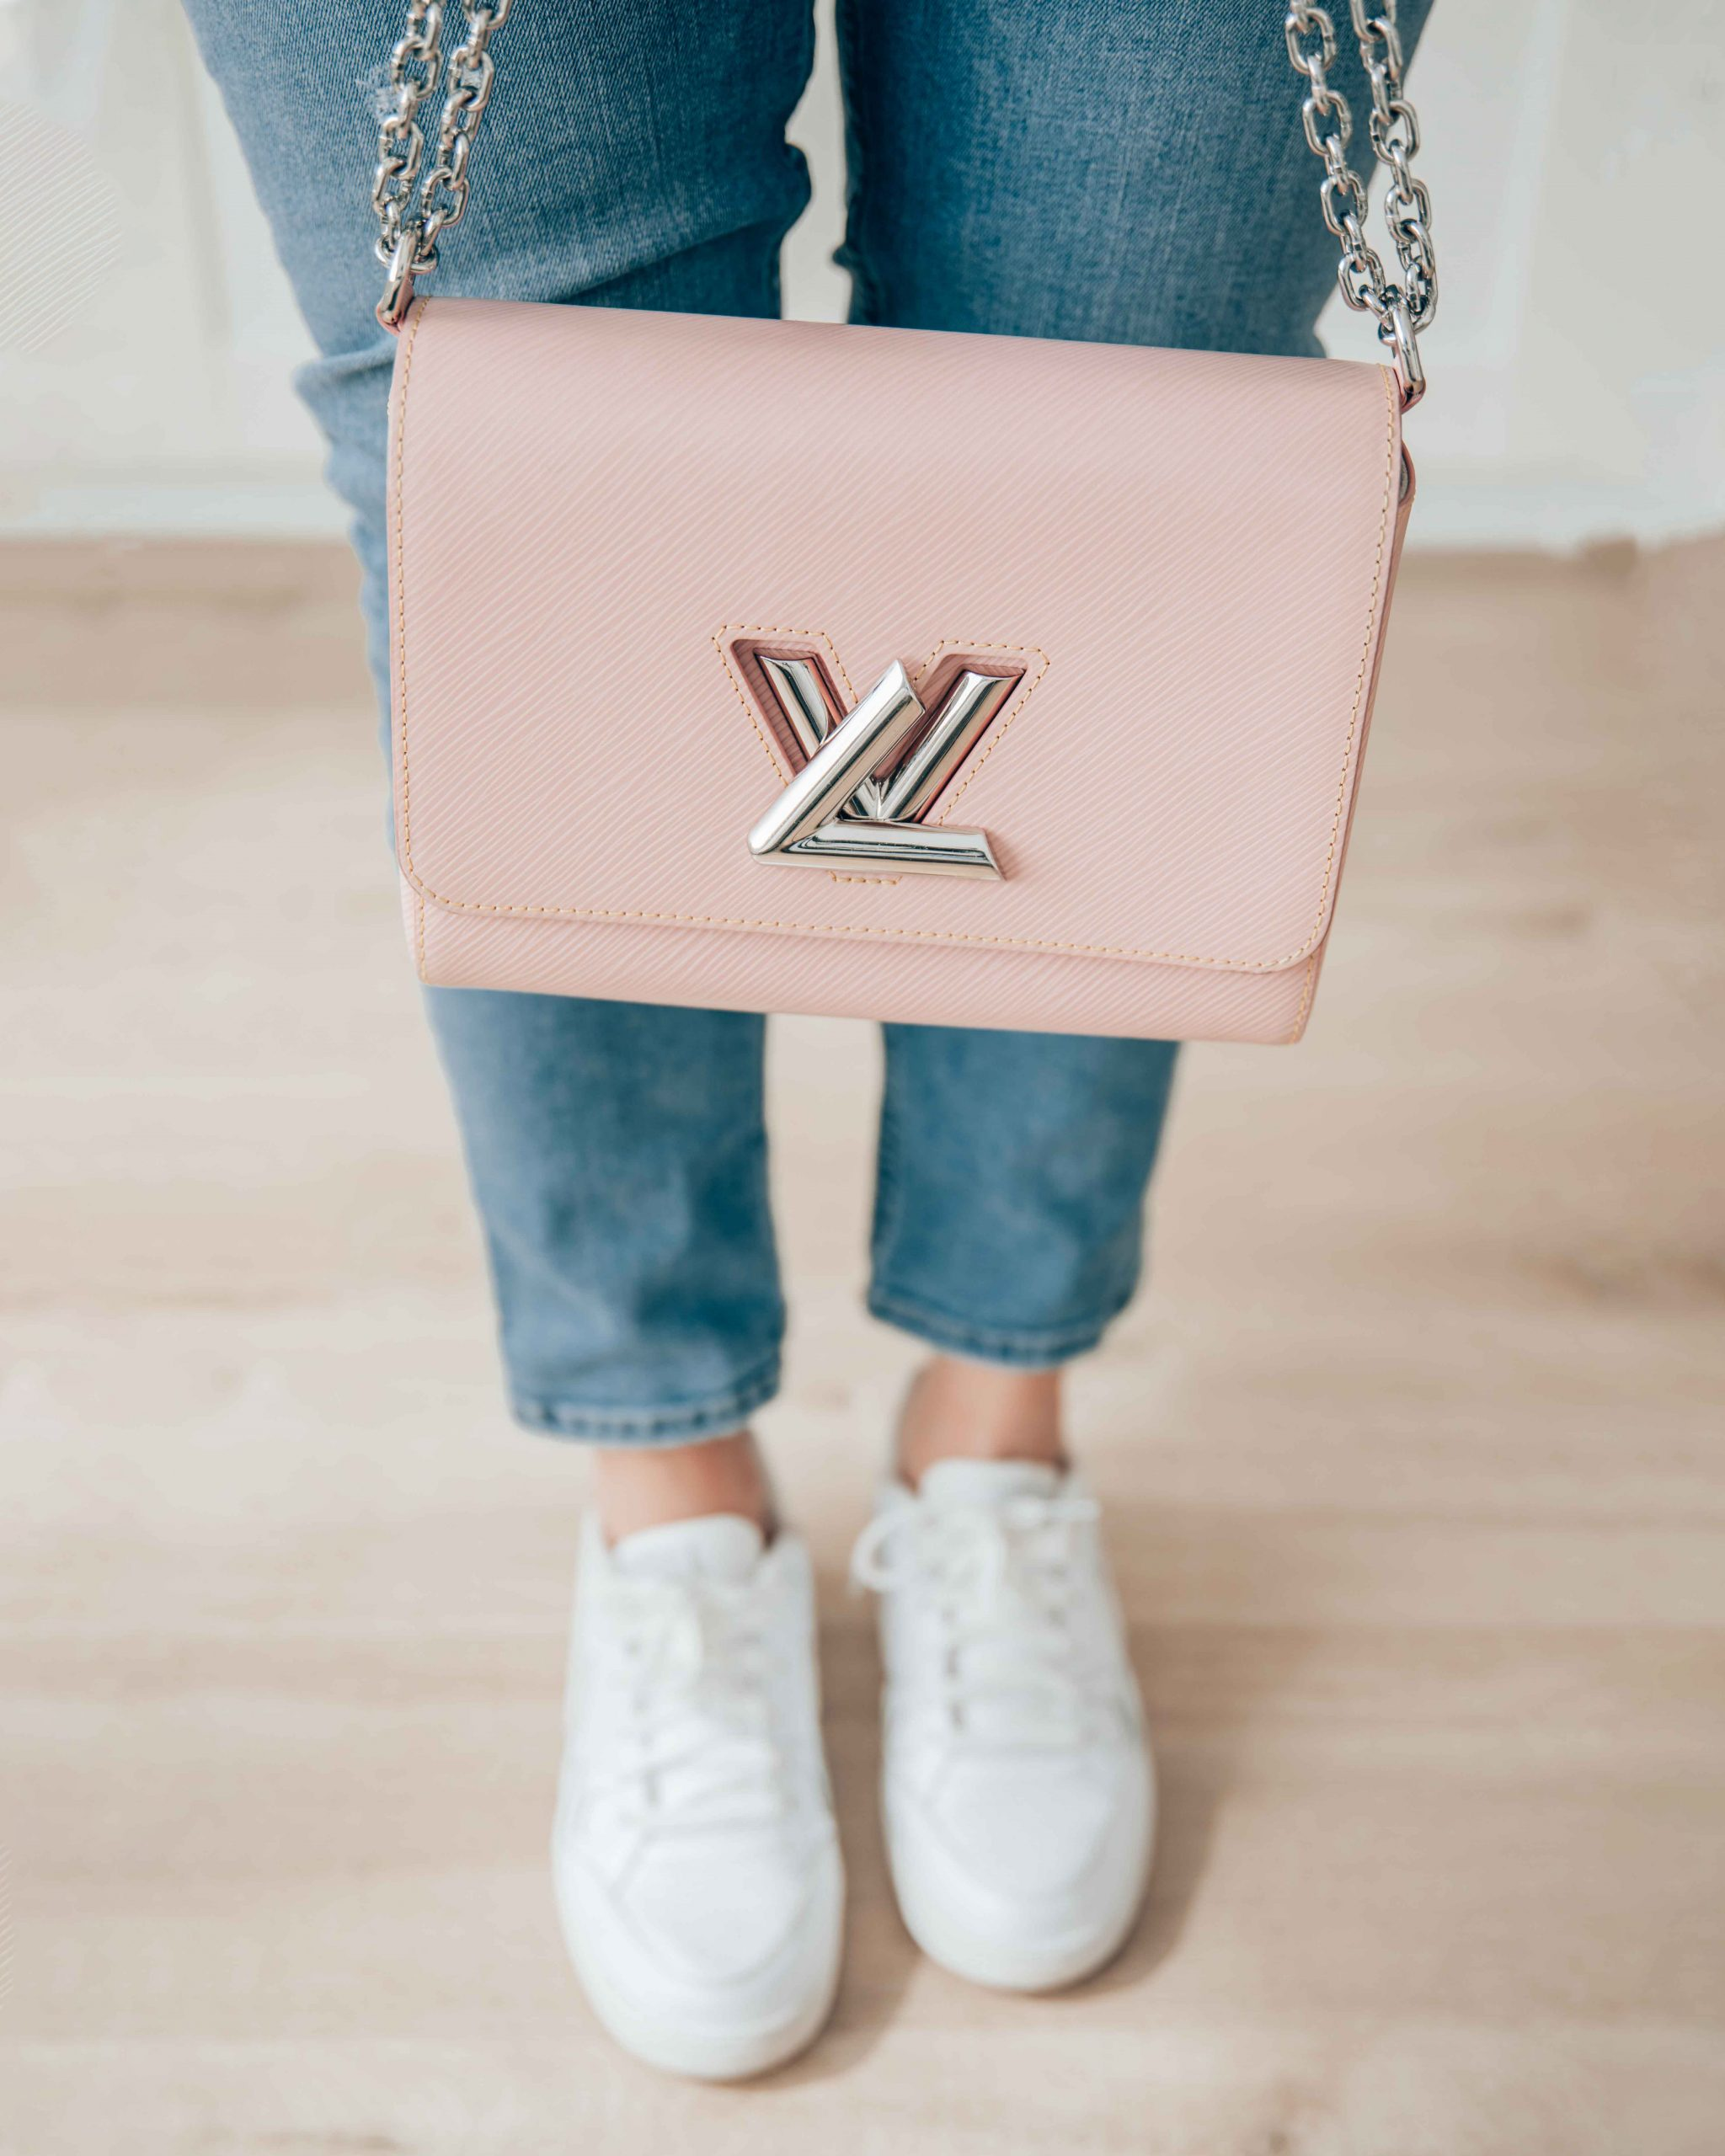 axelle-blanpain-louis-vuitton-twist-bag-rose-ballerine